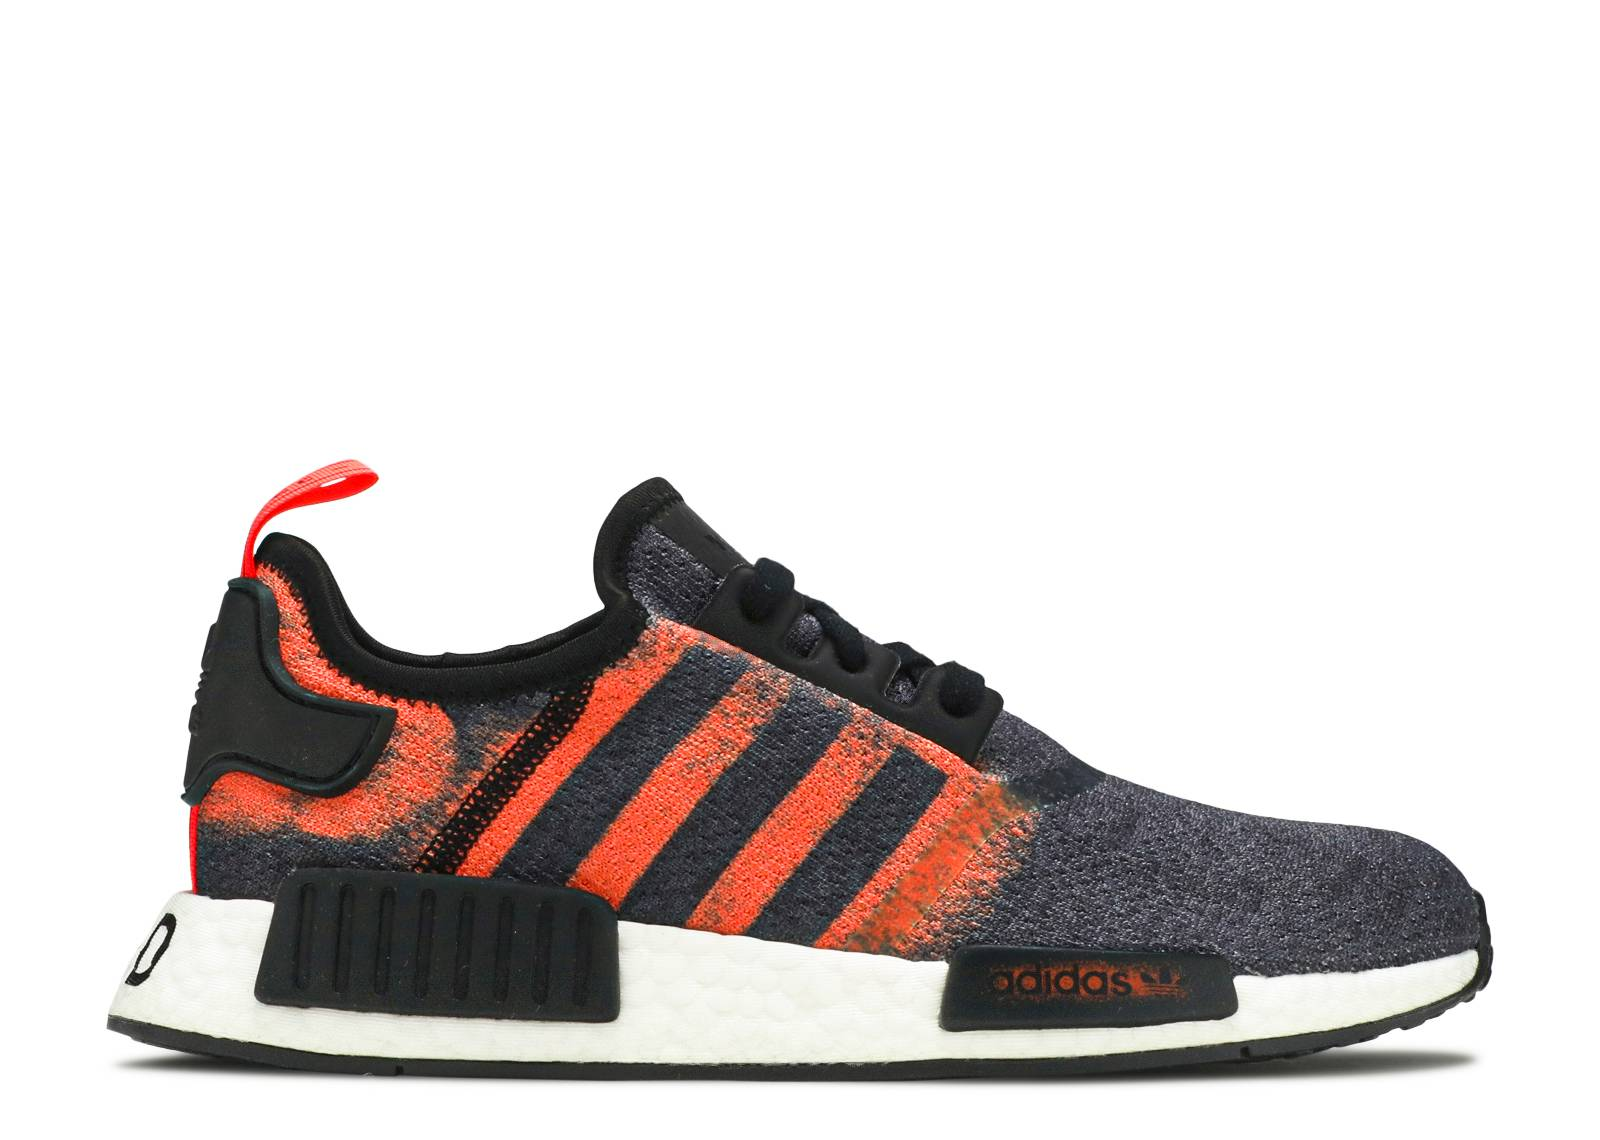 3b232b814 Adidas NMD - adidas Originals Men's & Women's Shoes | Flight Club